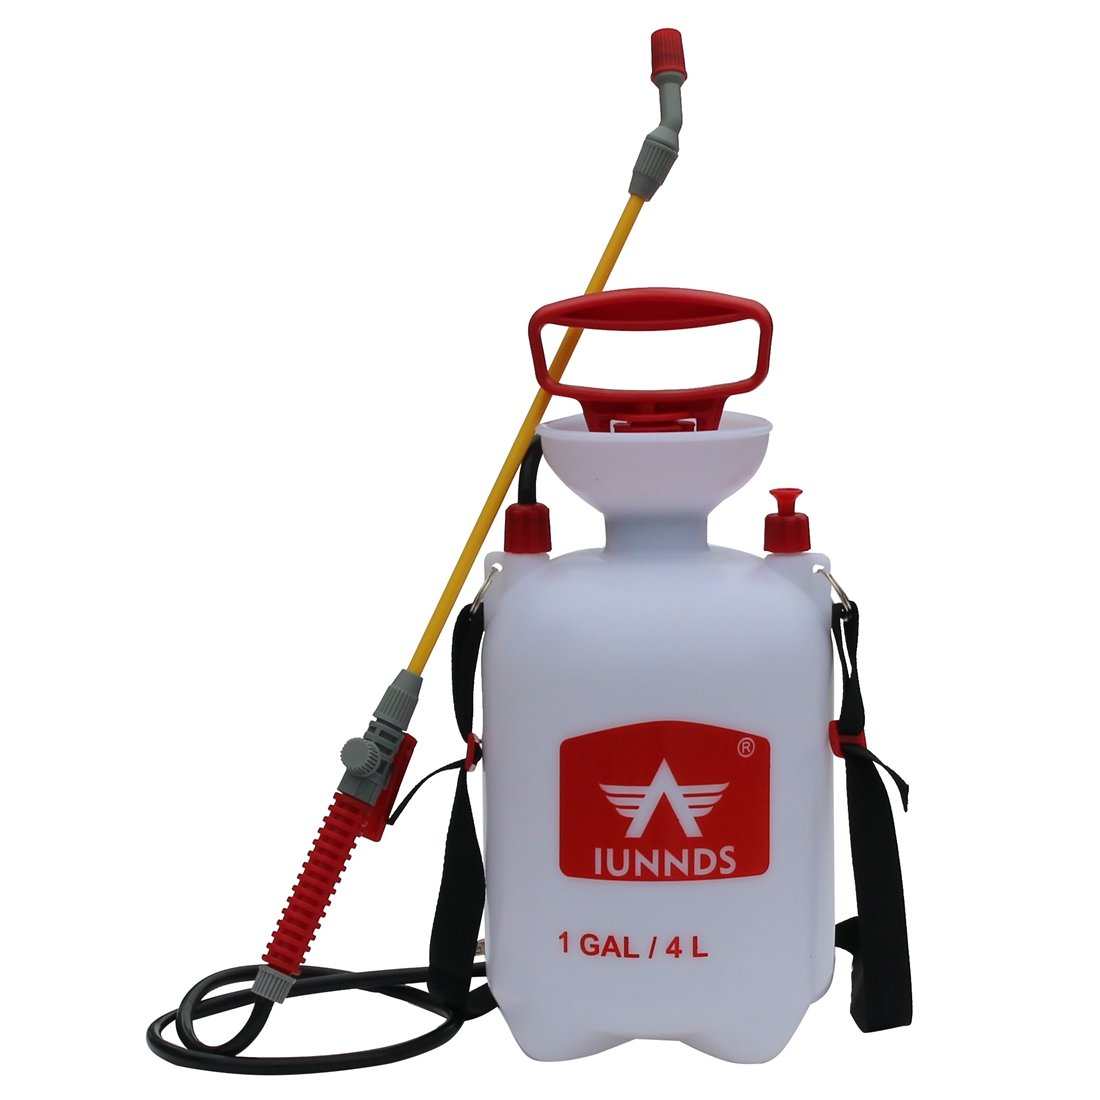 Sports God Lawn and Garden Pump Pressure Sprayer For Fertilizer, Herbicides, Pesticides, Mild Cleaning Solutions and Bleach by Sports God